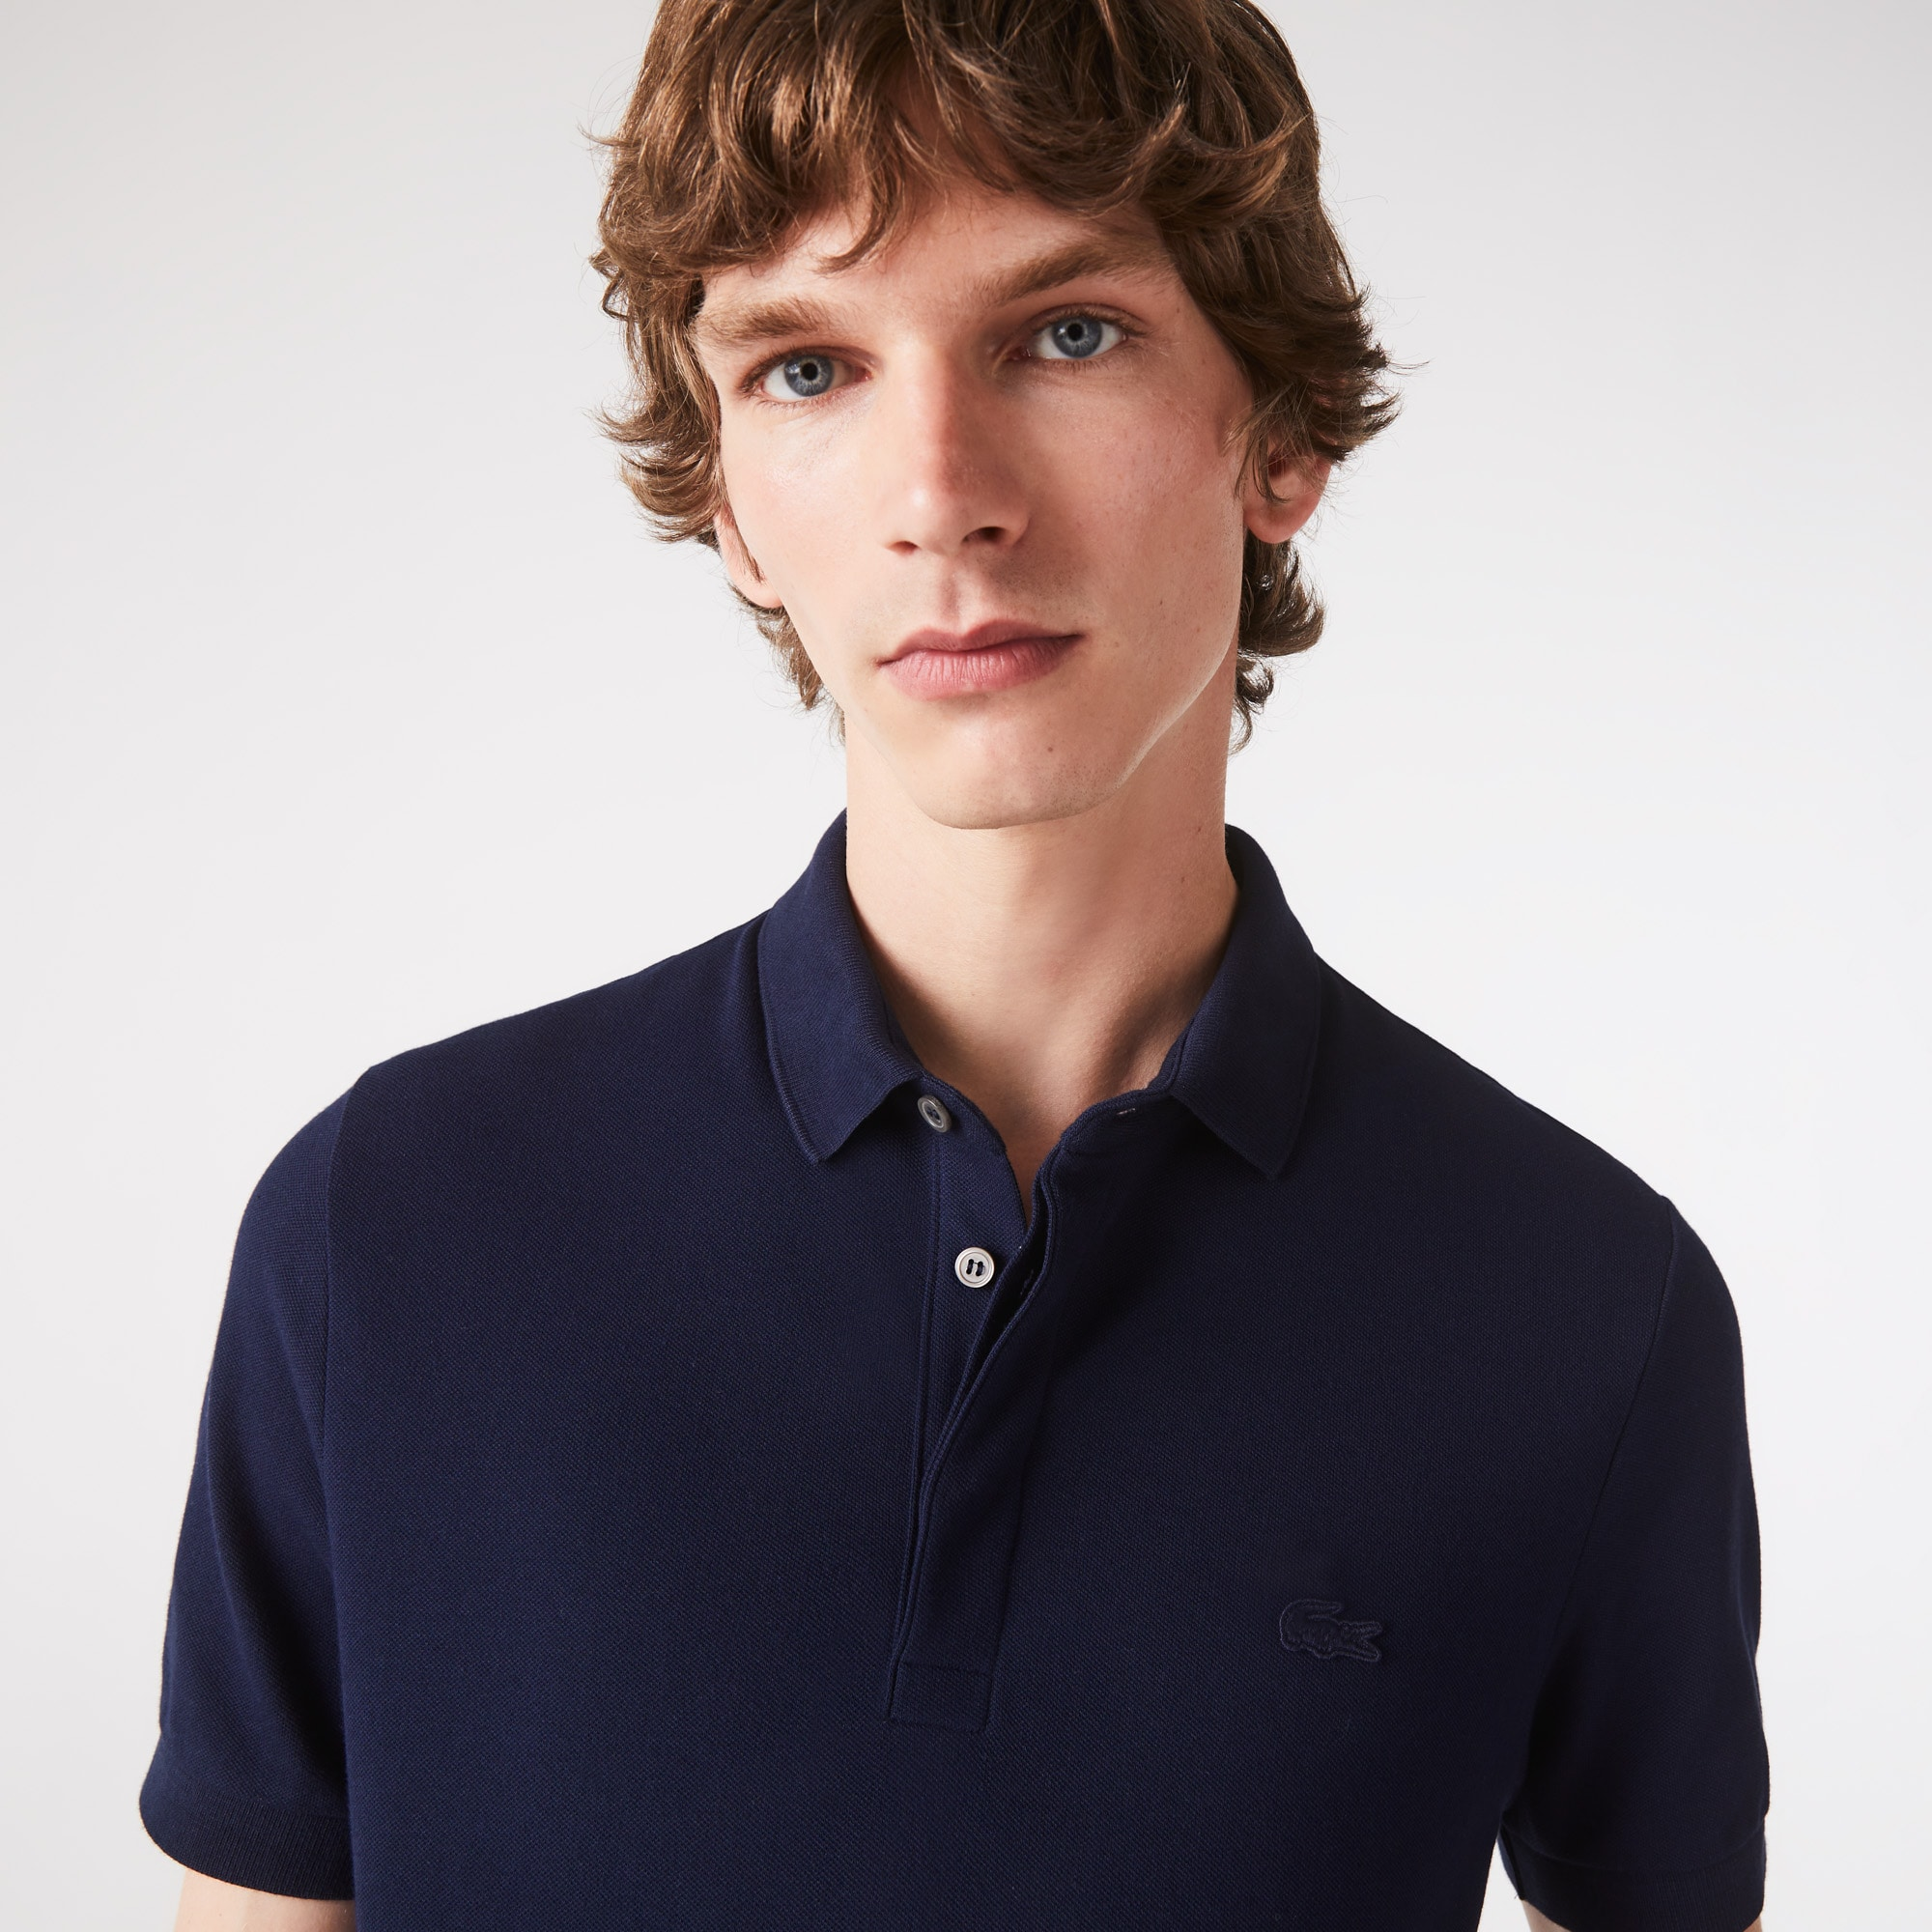 Lacoste - Paris Polo regular fit Lacoste en piqué de coton stretch - 1